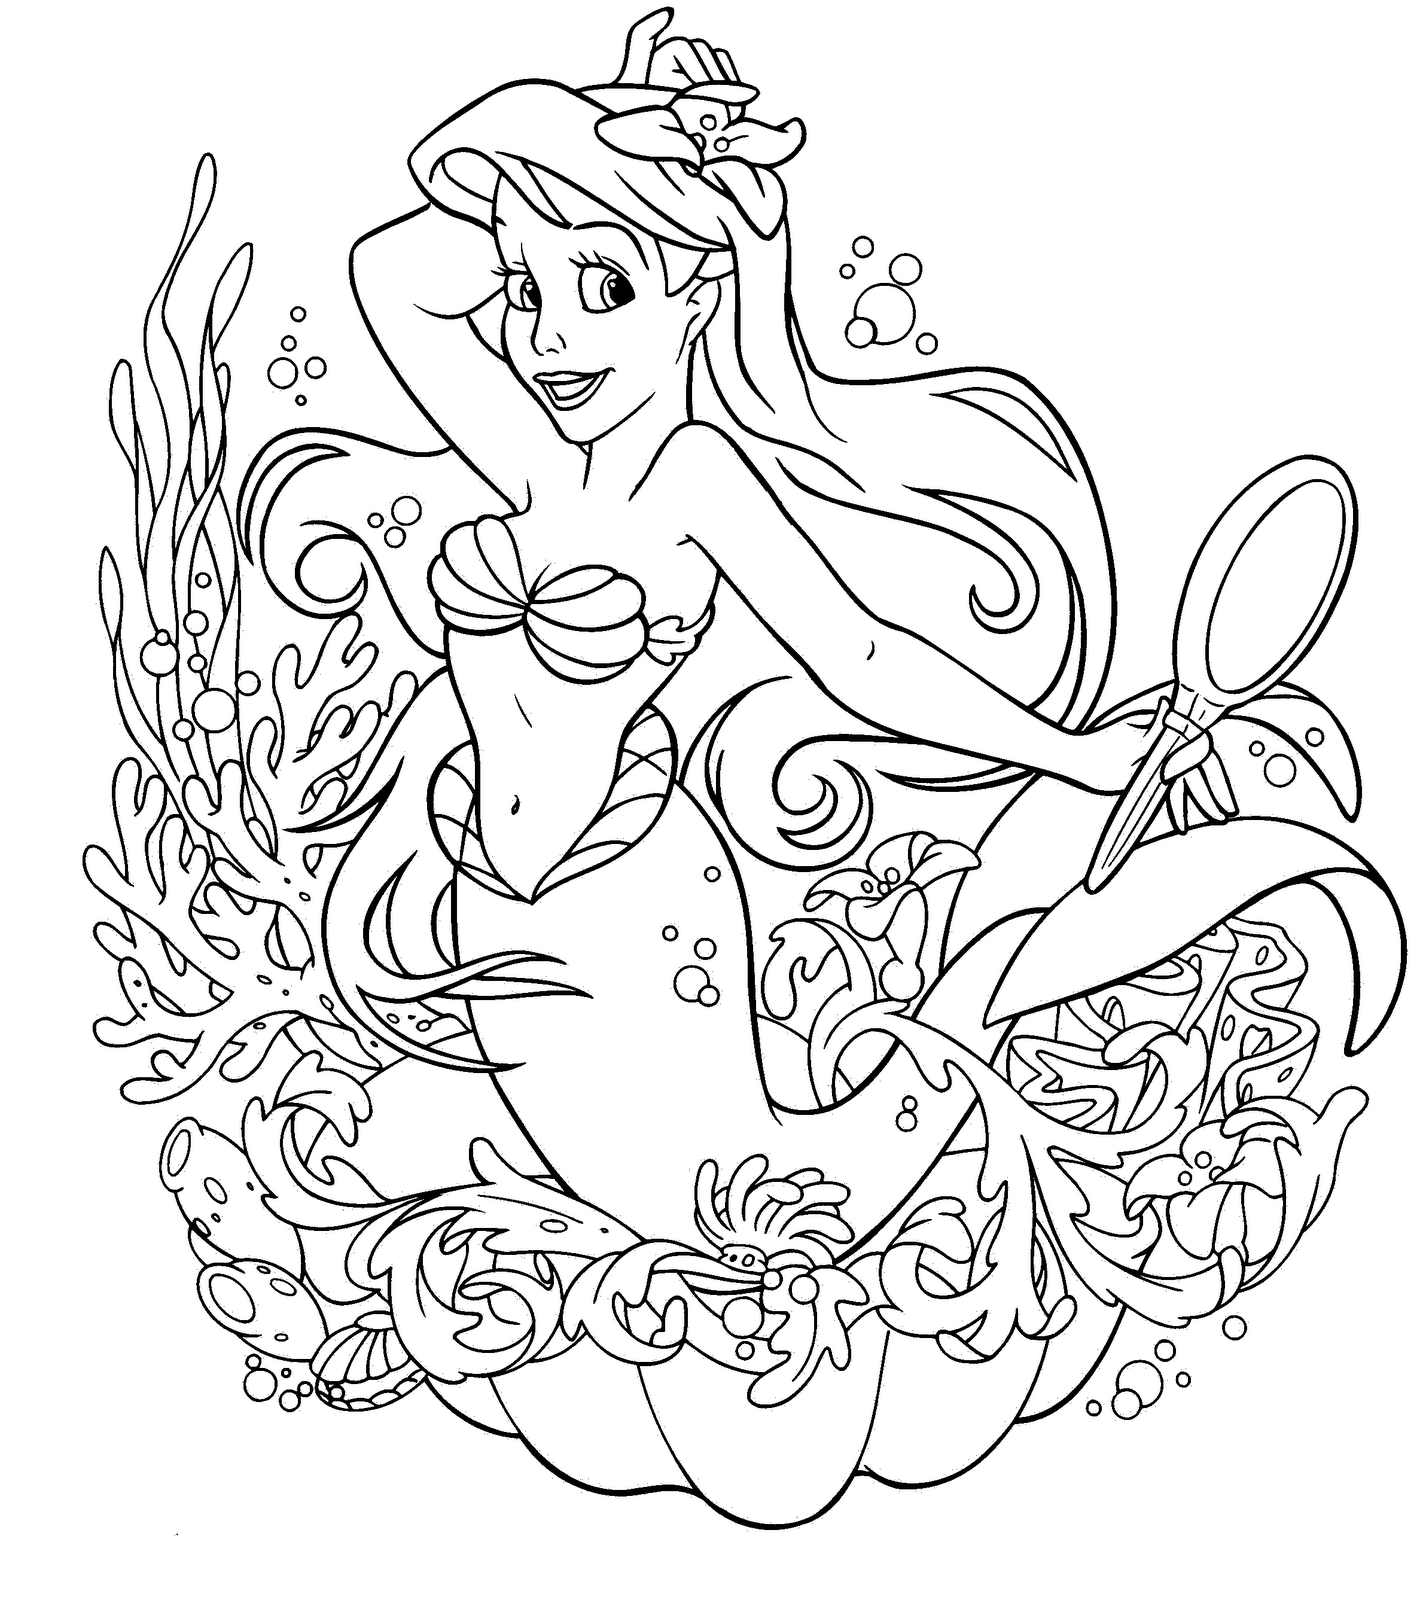 ariel disney coloring pages - photo#29